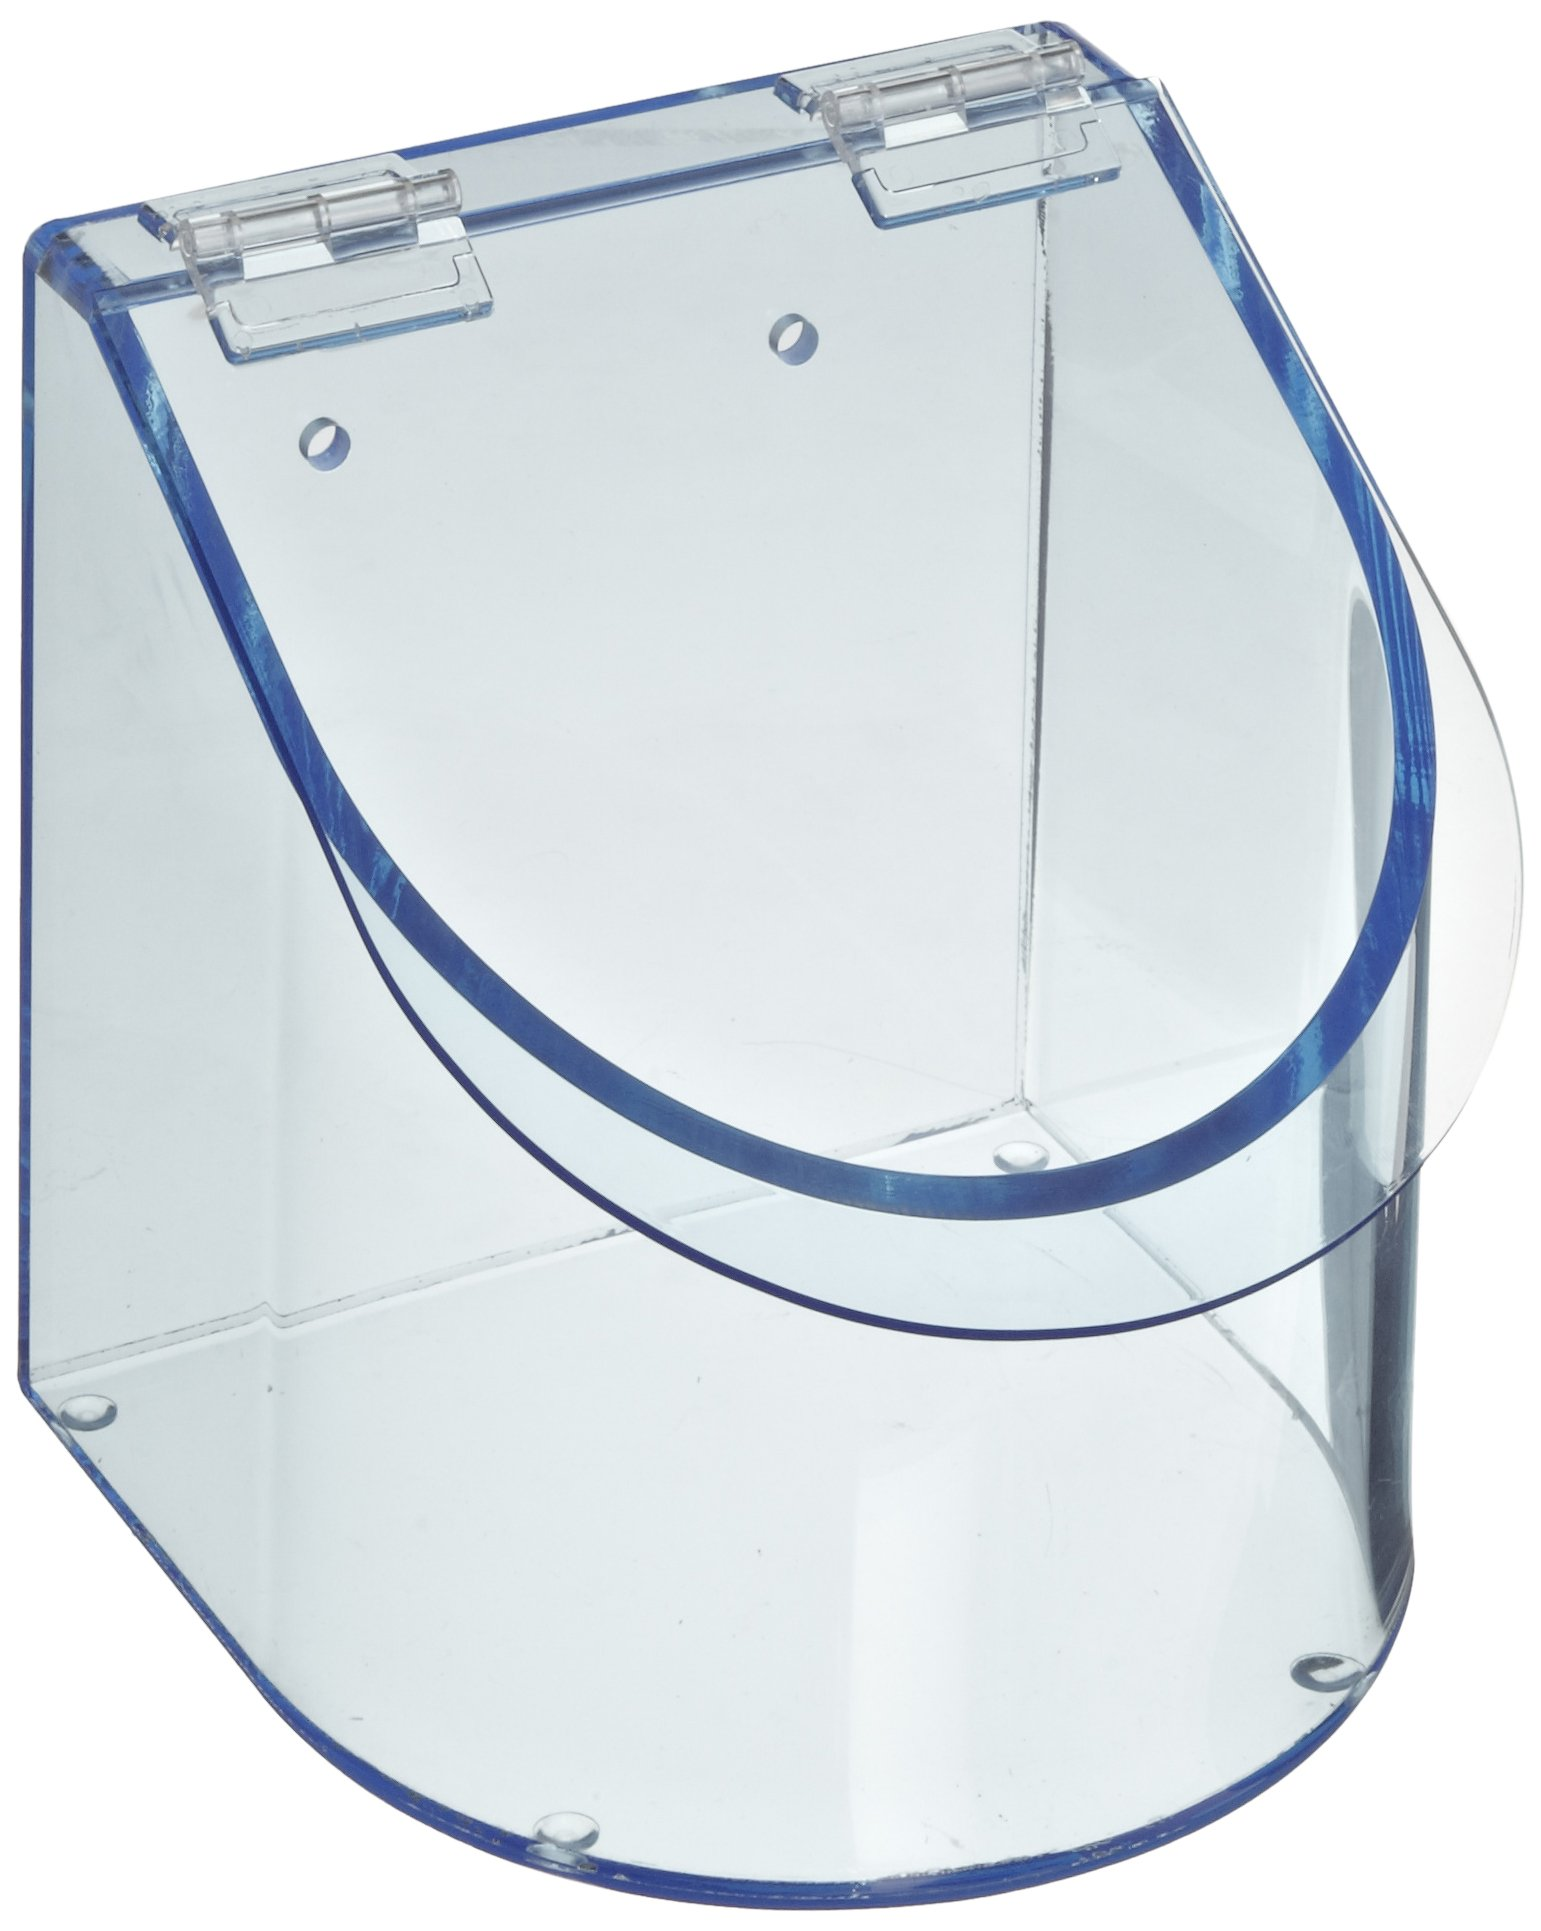 Heathrow Scientific HD23412 Neon Blue Acrylic Benchtop Dispensing Single Compartment Bin, 155mm Width x 155mm Height x 170mm Depth by Heathrow Scientific (Image #2)